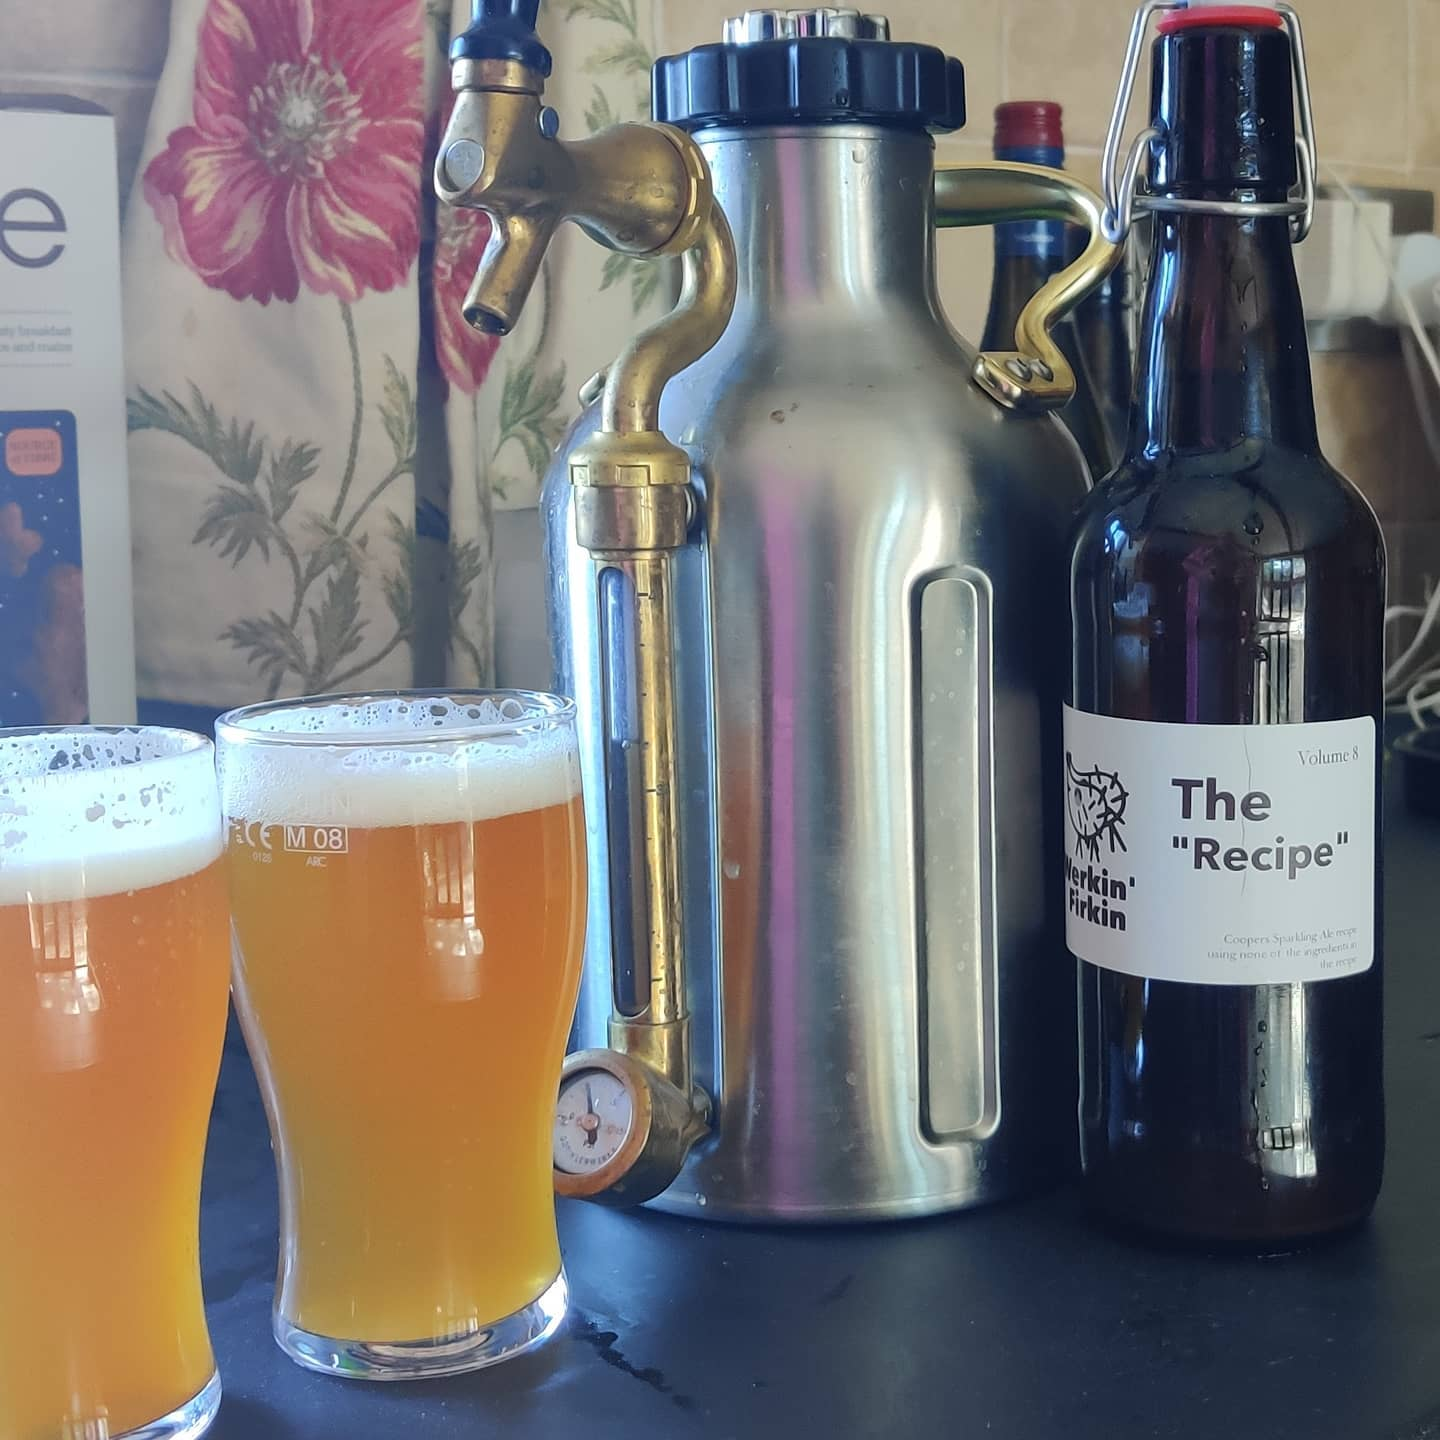 The 8th instalment in our homebrew adventures - we call this one The Recipe. Its loosely based on a Coopers Sparkling Ale recipe, except we didn't actually have any of the ingredients mentioned. So, same proportions but different gear. Using a Kveik yeast. Verdict? Probably won't kill you.